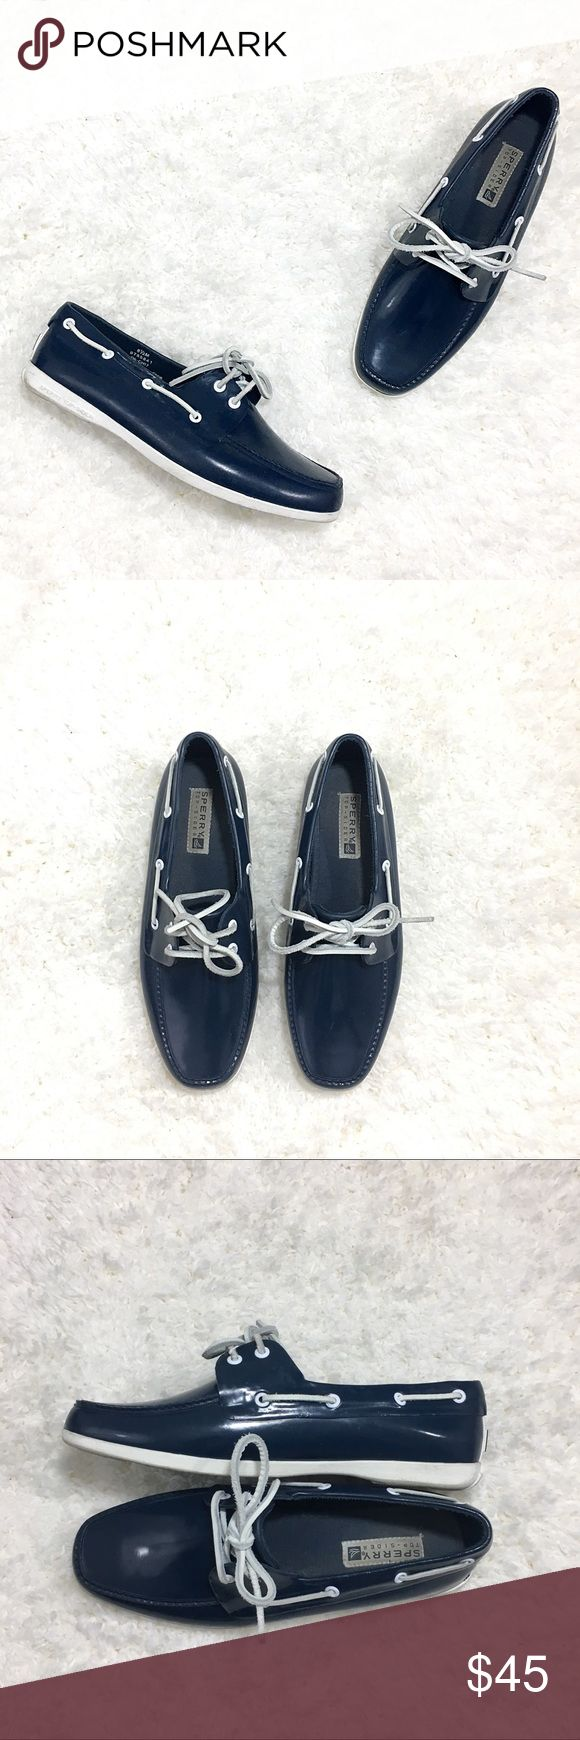 🆕 Listing!  Sperry | Vintage Rubber Shoes Navy, waterproof rubber boat shoes.  White leather laces.  Some marks to leather typical of vintage shoes.  In otherwise great condition.  These are way cool, I've never seen any like them before.  Love! Sperry Shoes Flats & Loafers